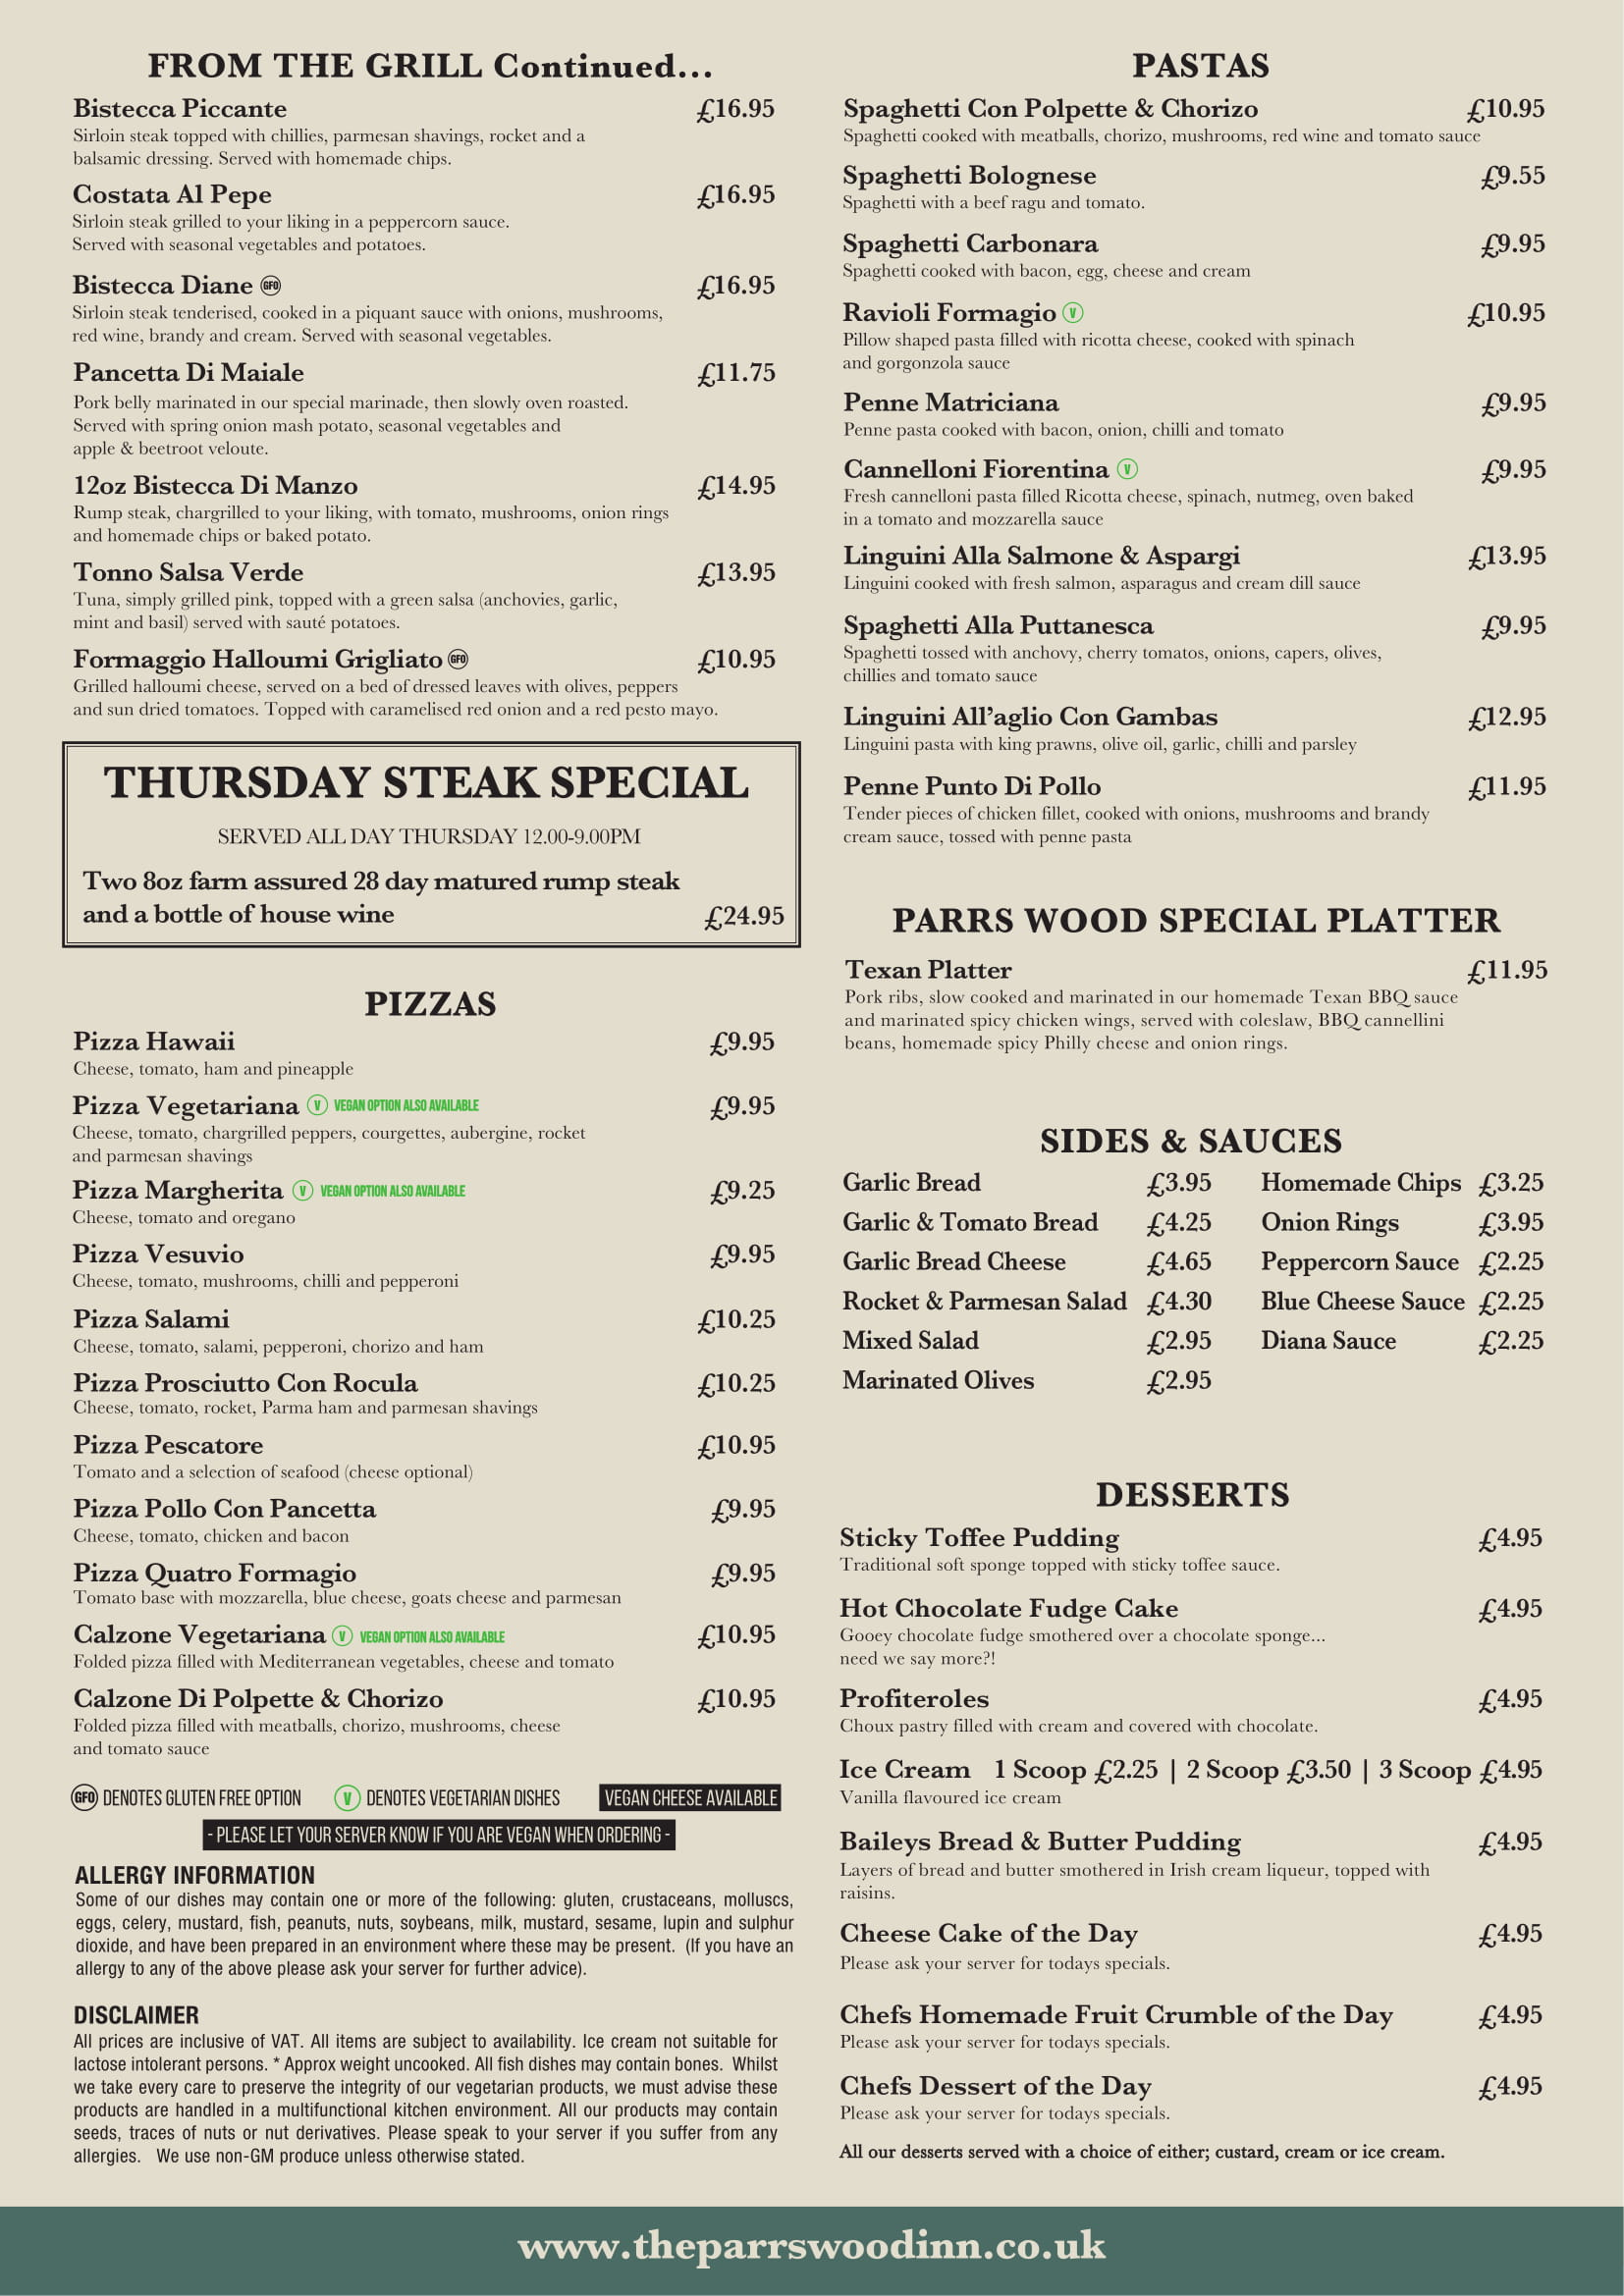 http://www.theparrswoodinn.co.uk/wp-content/uploads/2019/06/ParrsWood-Main-Menu-June-2019-002.jpg